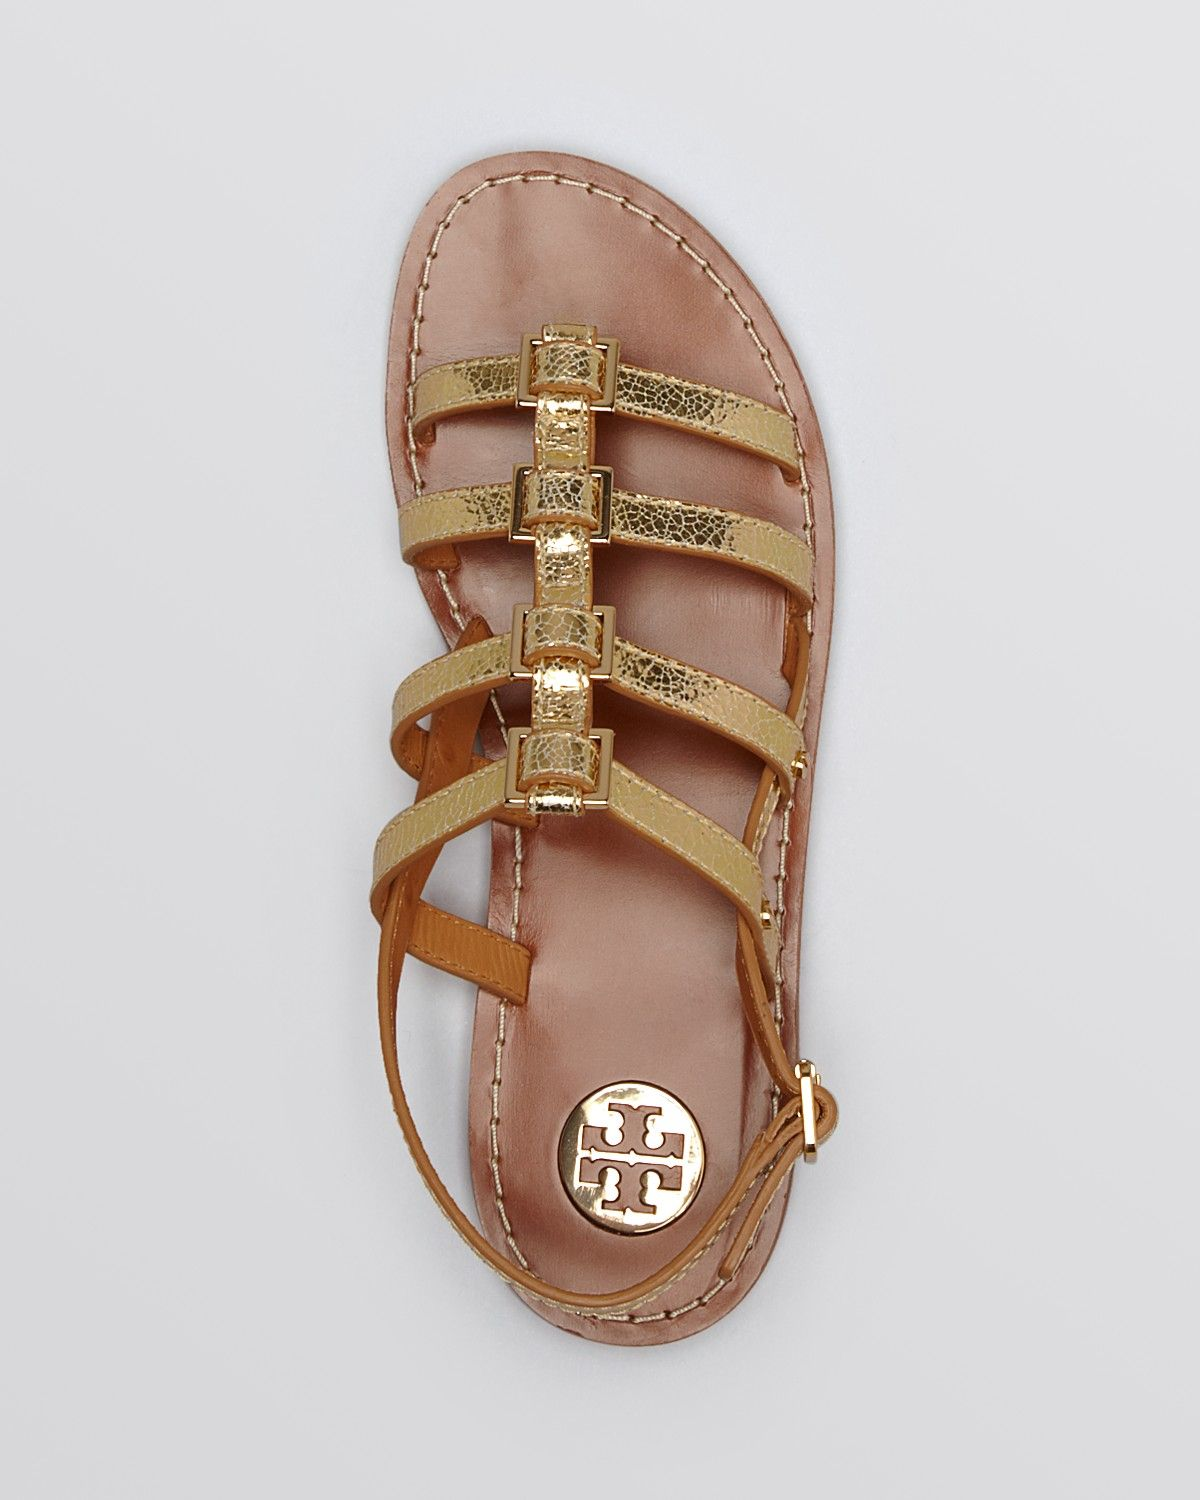 2b03722c8 Tory Burch Flat Gladiator Sandals - Reggie